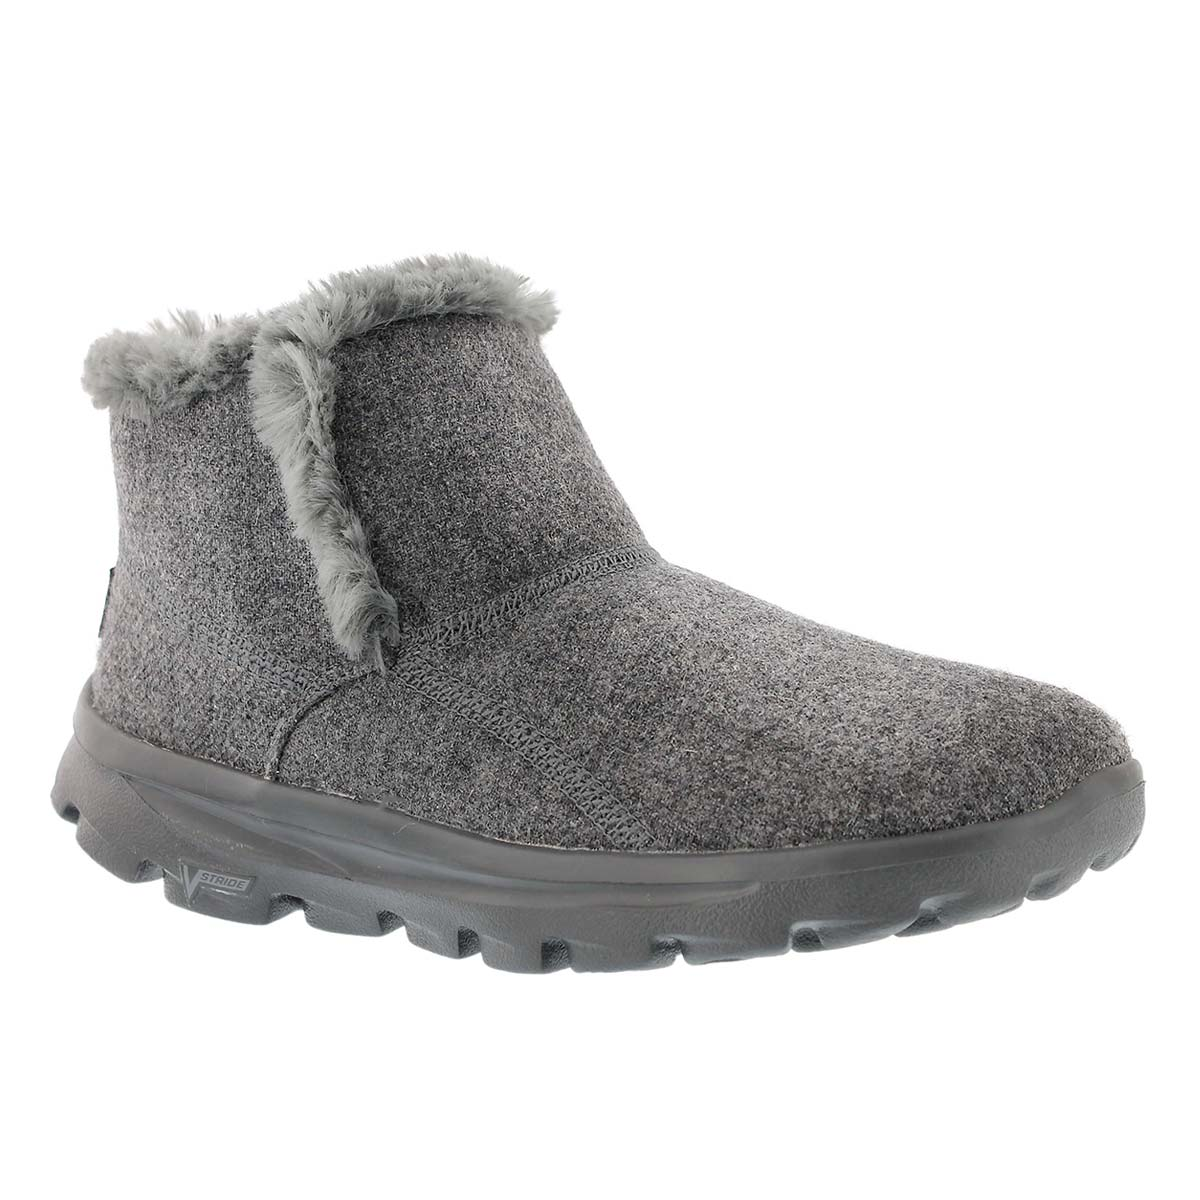 Wome's GOwalk MOVE charcoal chugga bootie